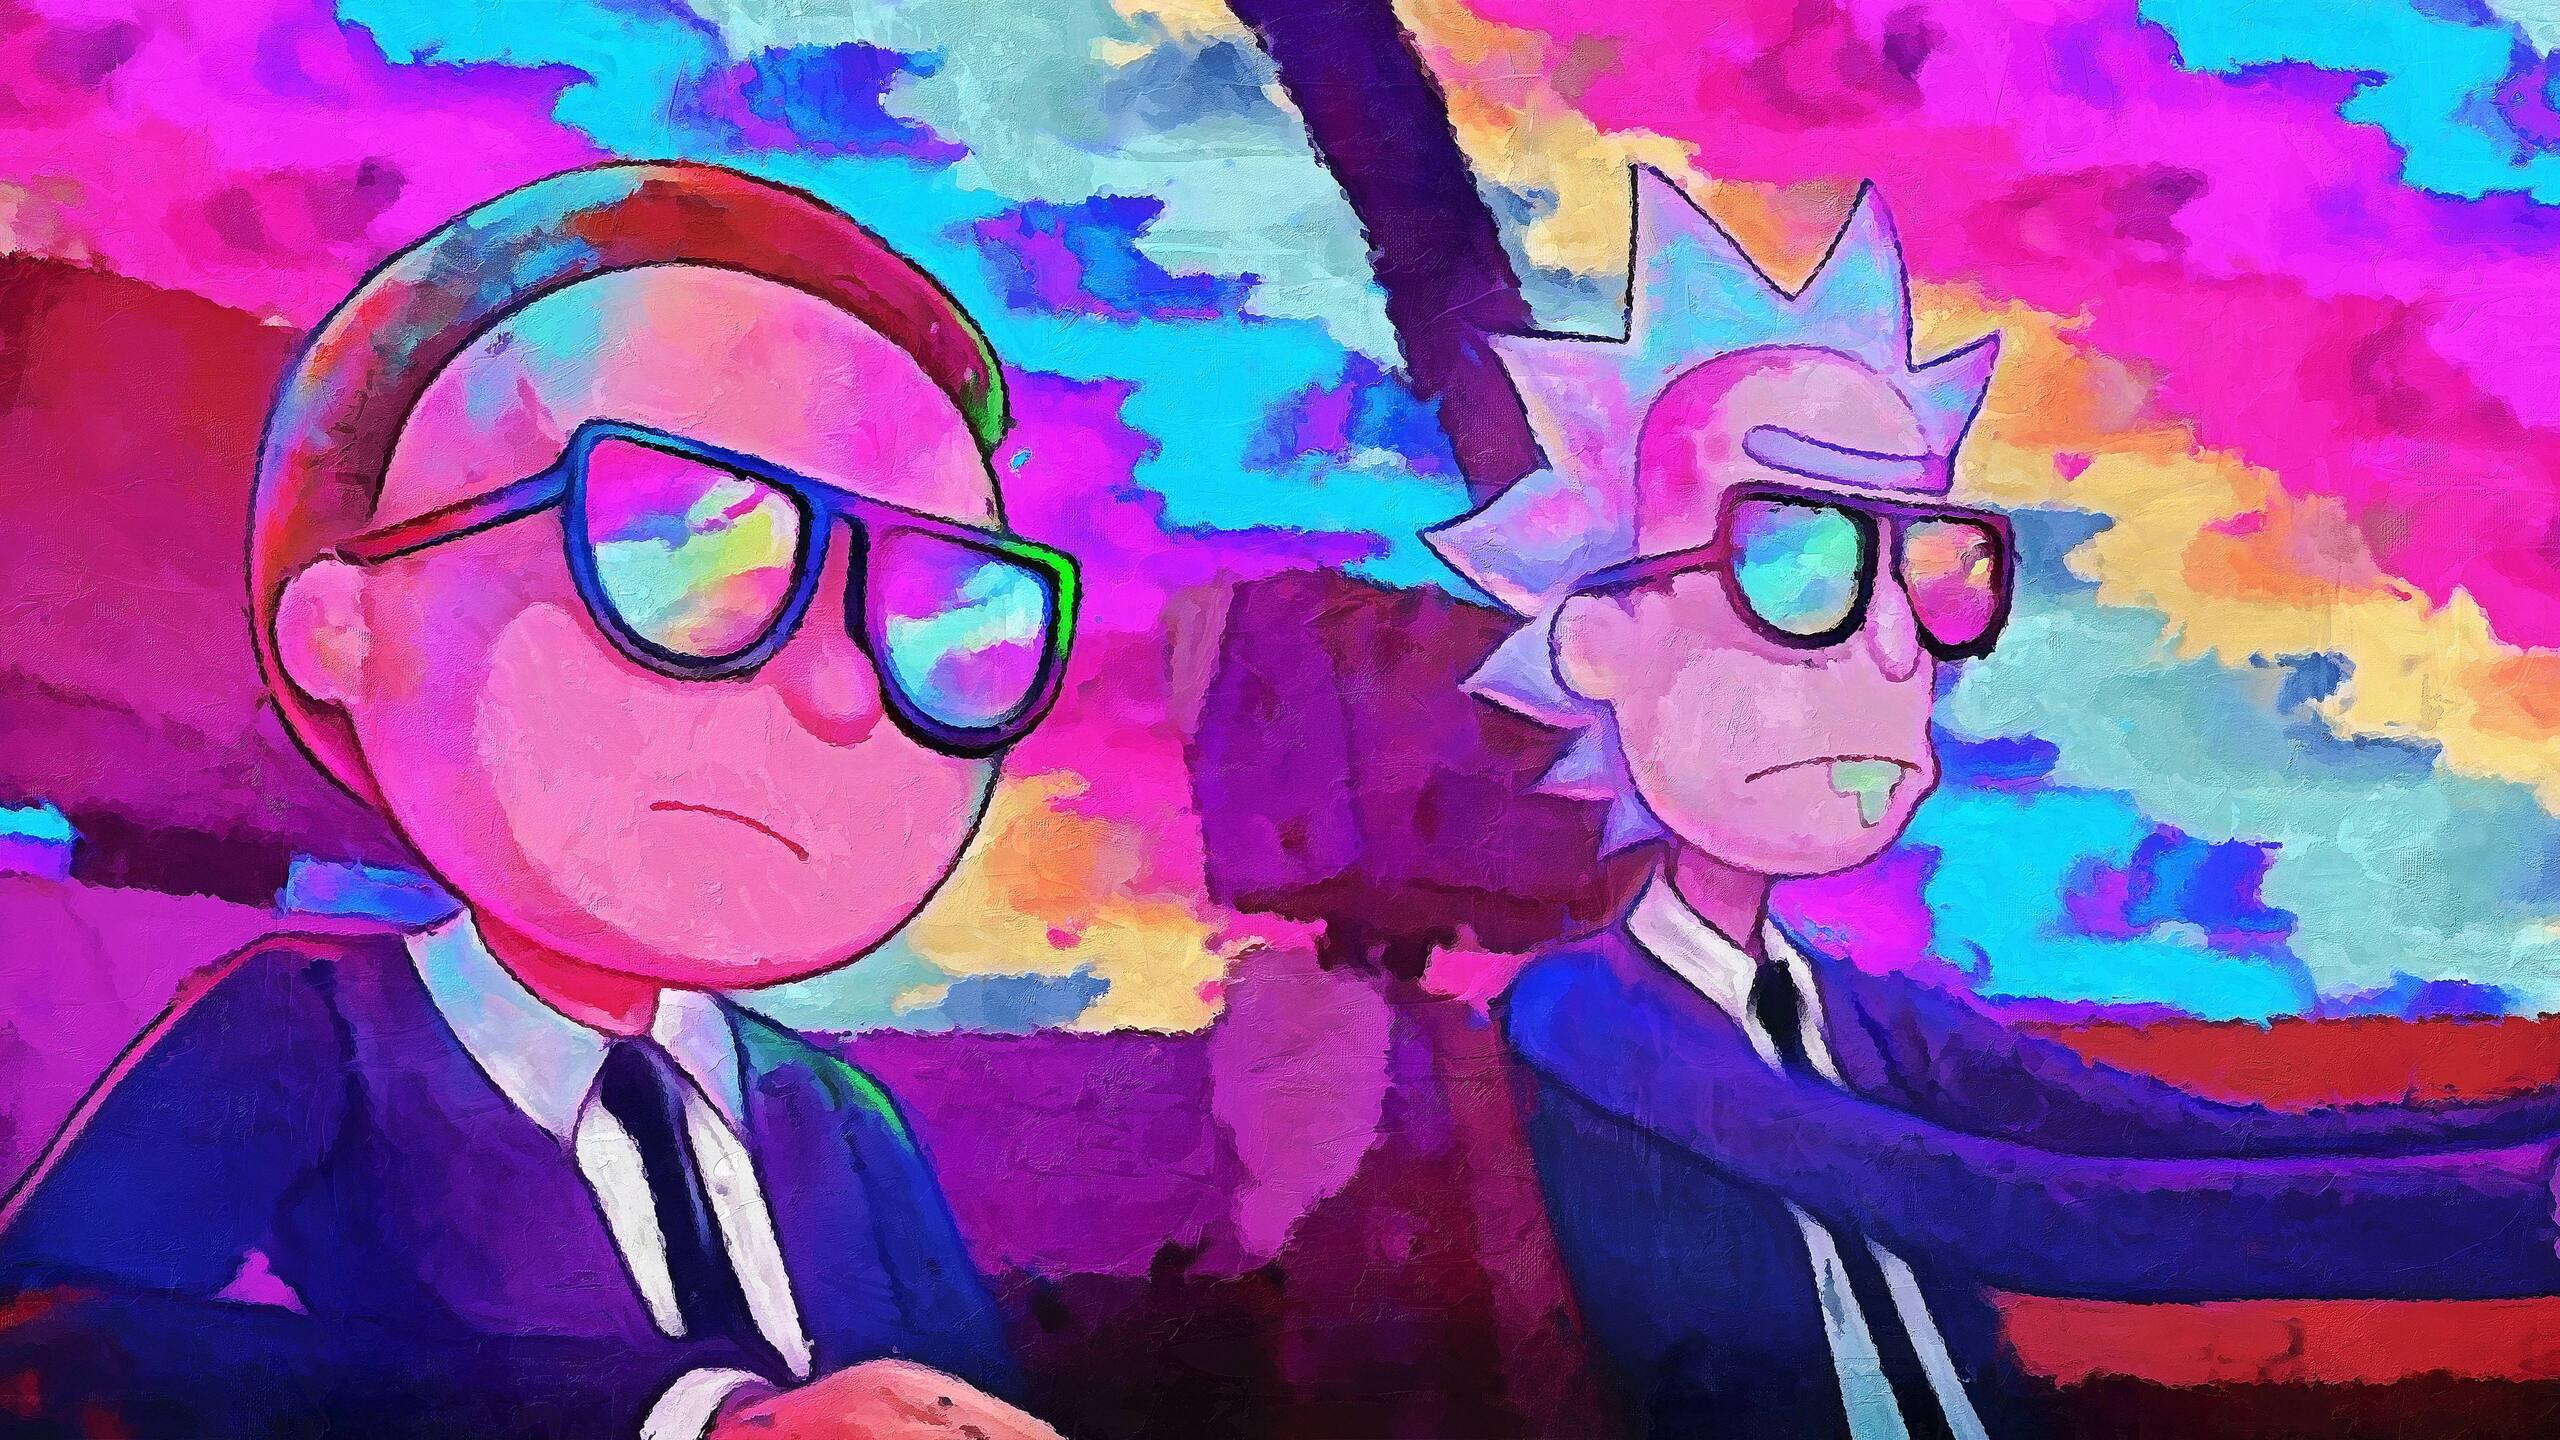 2560x1440 Rick And Morty 5k Artwork 1440p Resolution Hd 4k